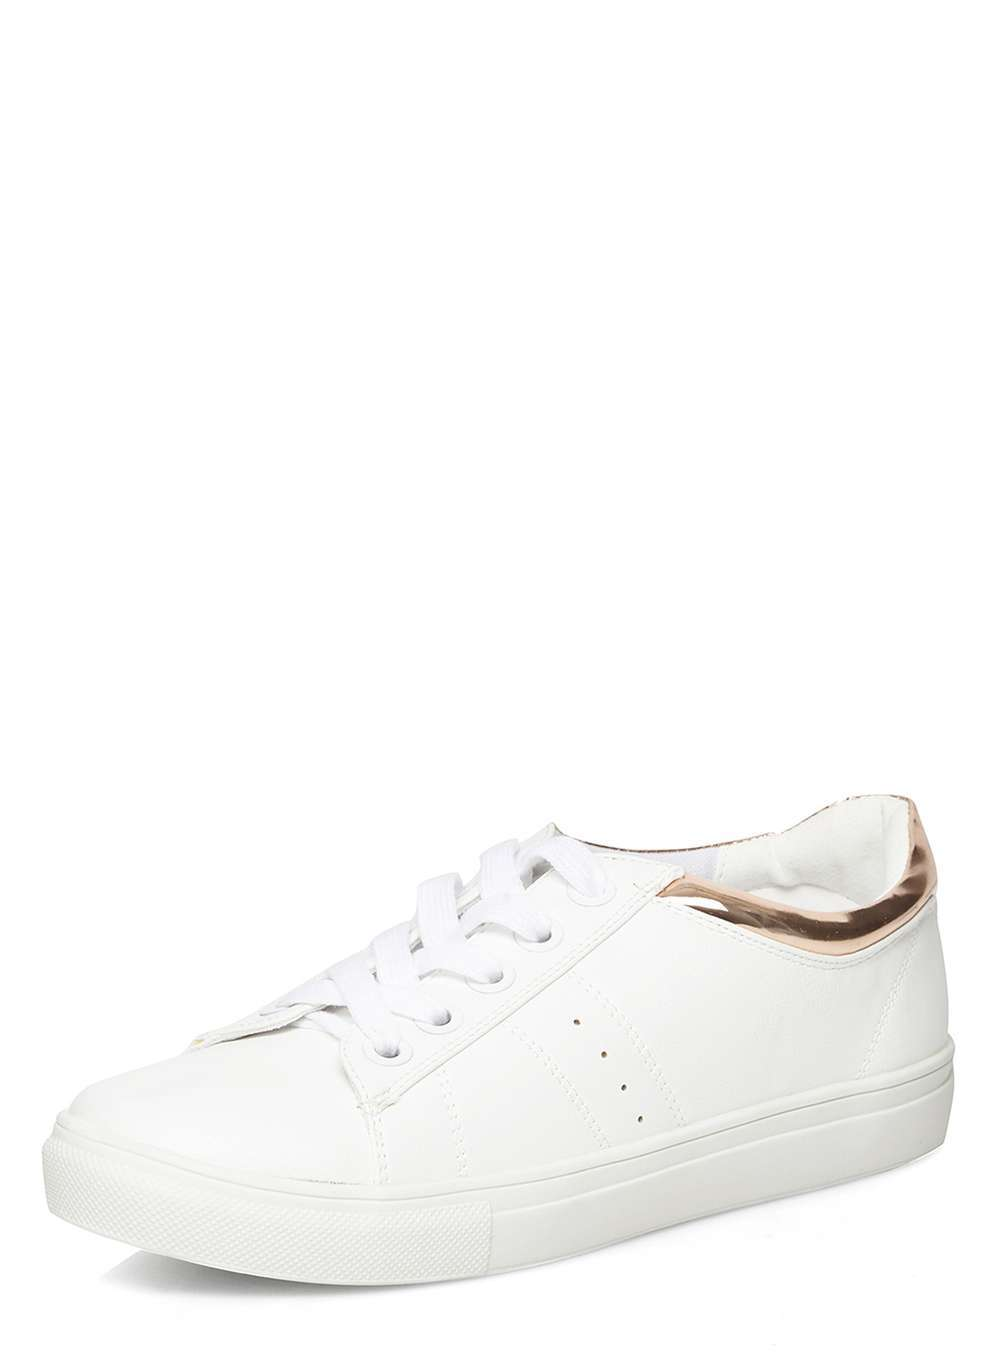 Womens Rose Gold 'cady' Lace Up Trainers Rose Gold - predominant colour: white; occasions: casual; material: fabric; heel height: flat; toe: round toe; style: trainers; finish: plain; pattern: plain; wardrobe: basic; season: a/w 2016